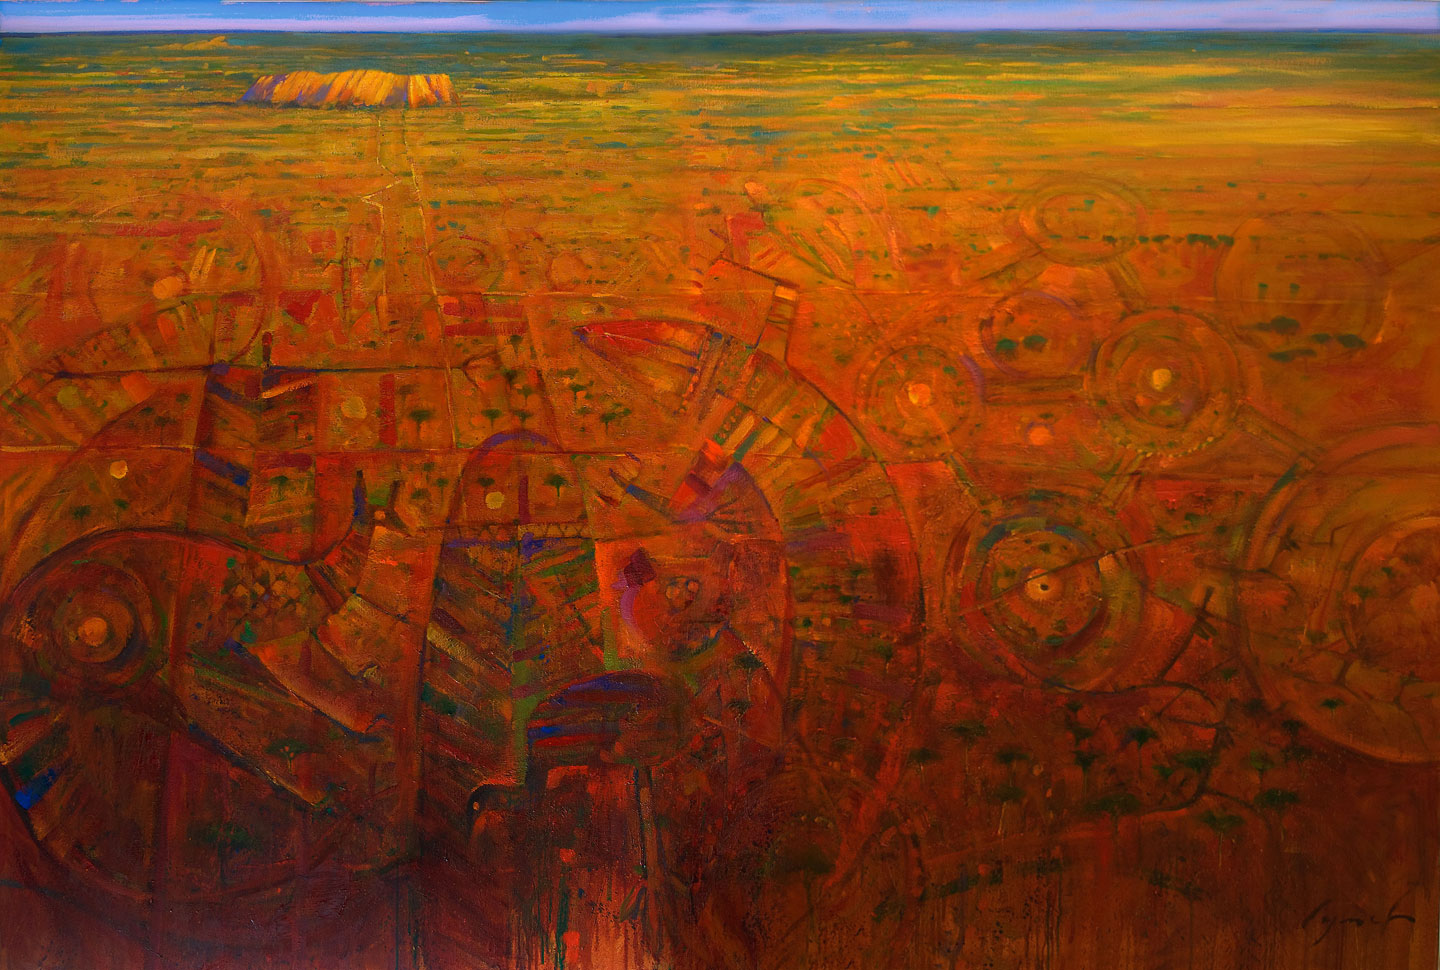 36 X 48 in. oil on canvas. copyright Brent Lynch